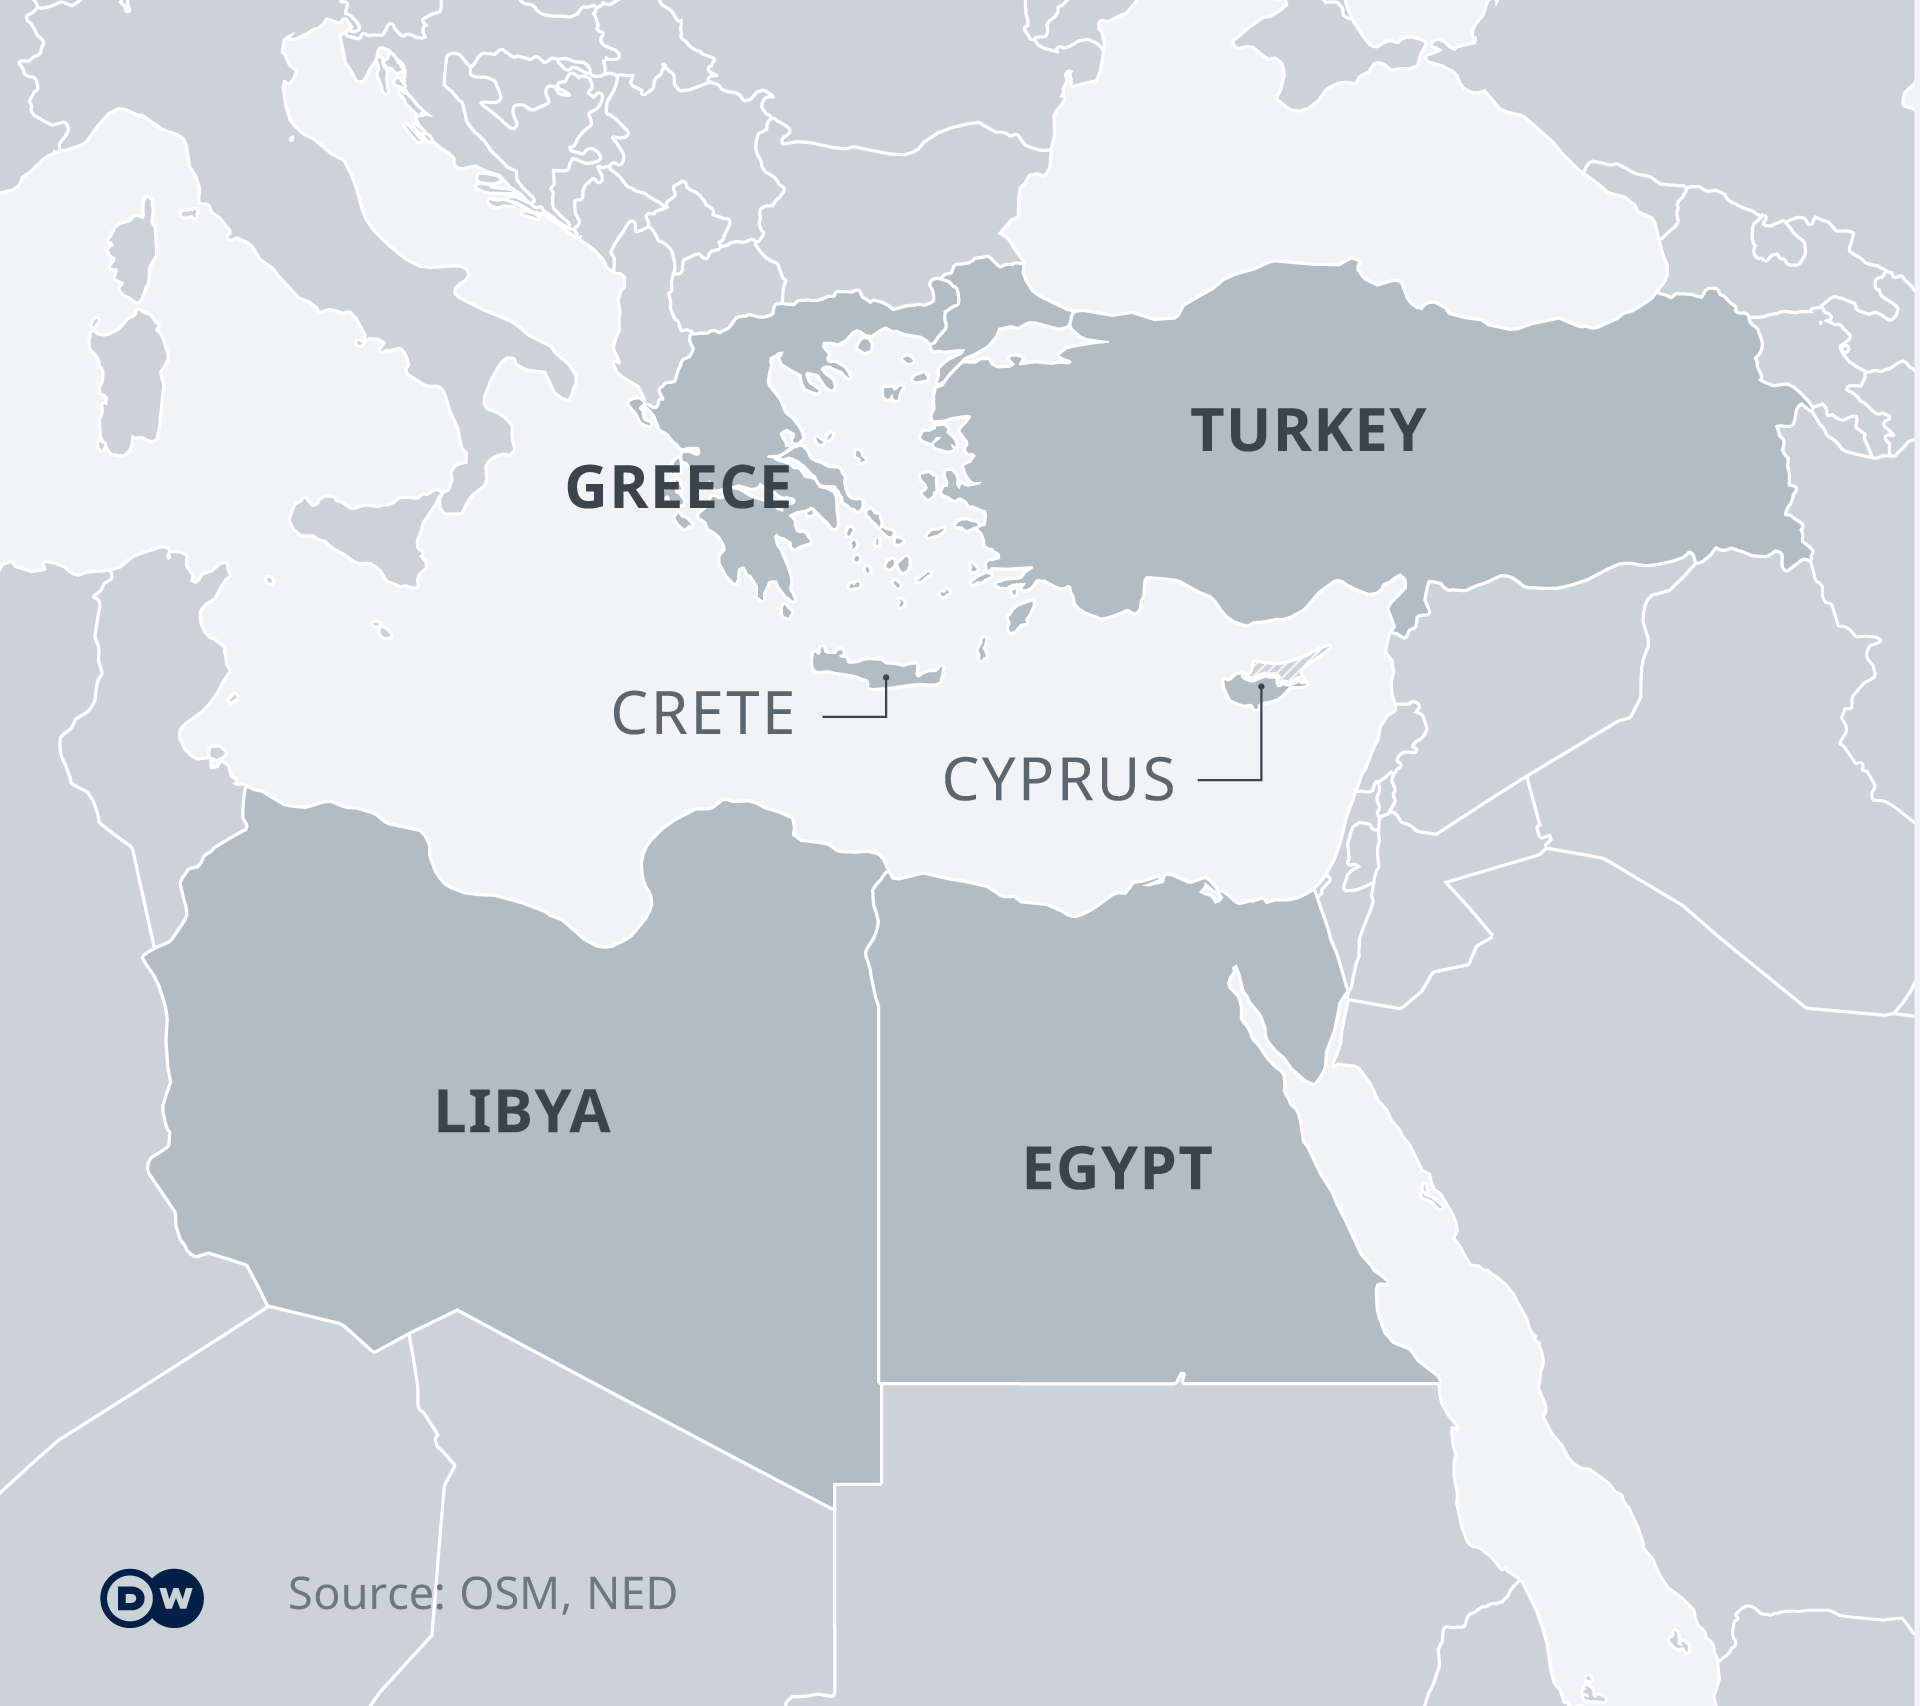 turkey and egypt map Turkey Libya Maritime Deal Triggers Mediterranean Tensions